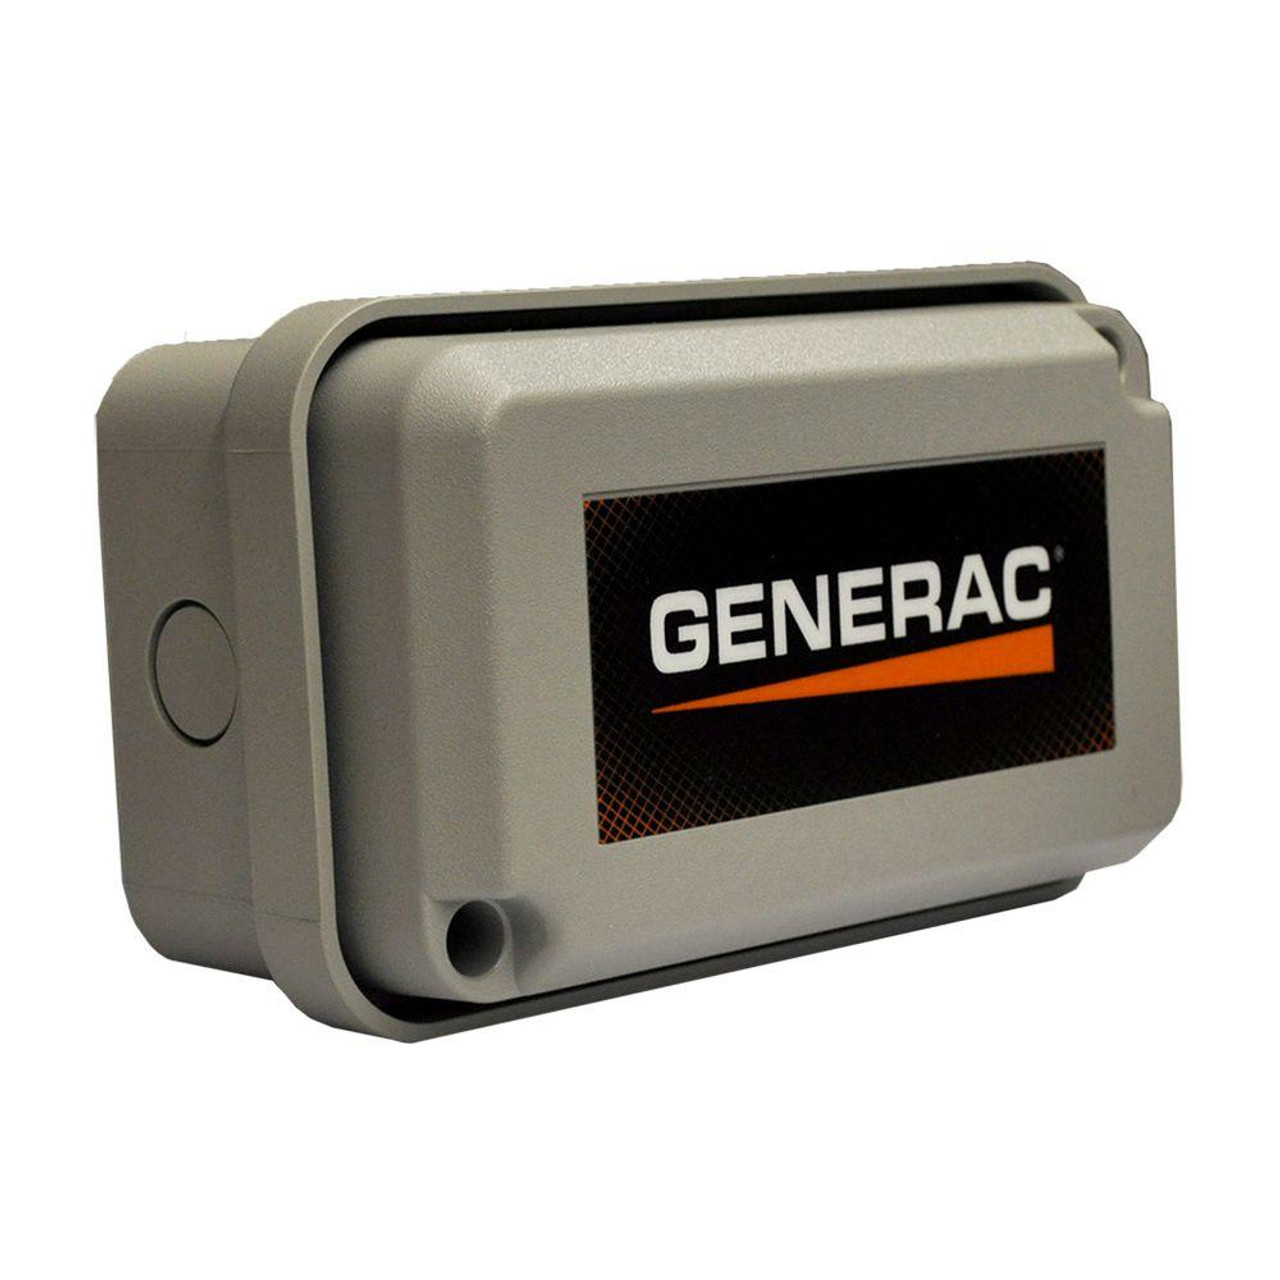 GENERAC 50-AMP PPM POWER MANAGEMENT MODULE (6181)